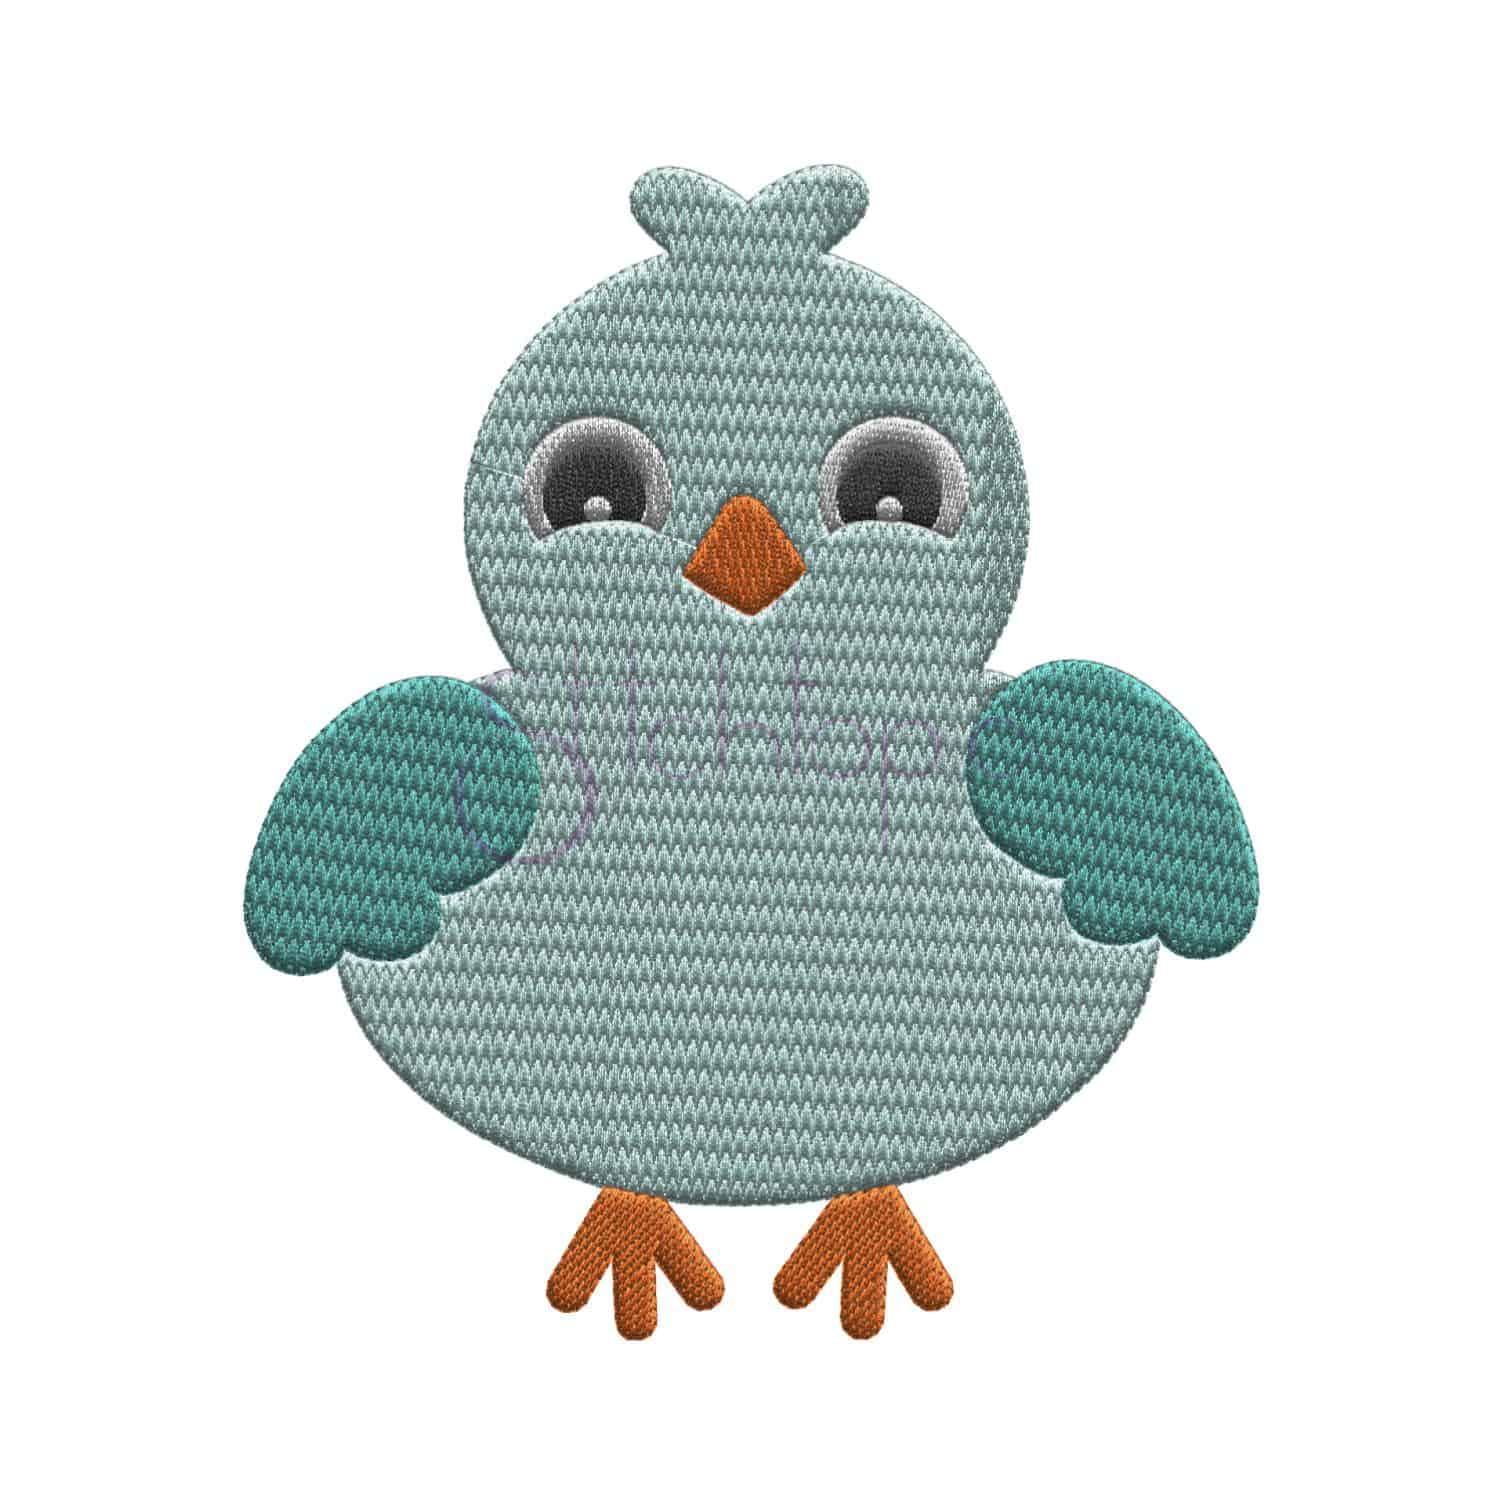 Bird Embroidery Pattern Bird Embroidery Design Boy